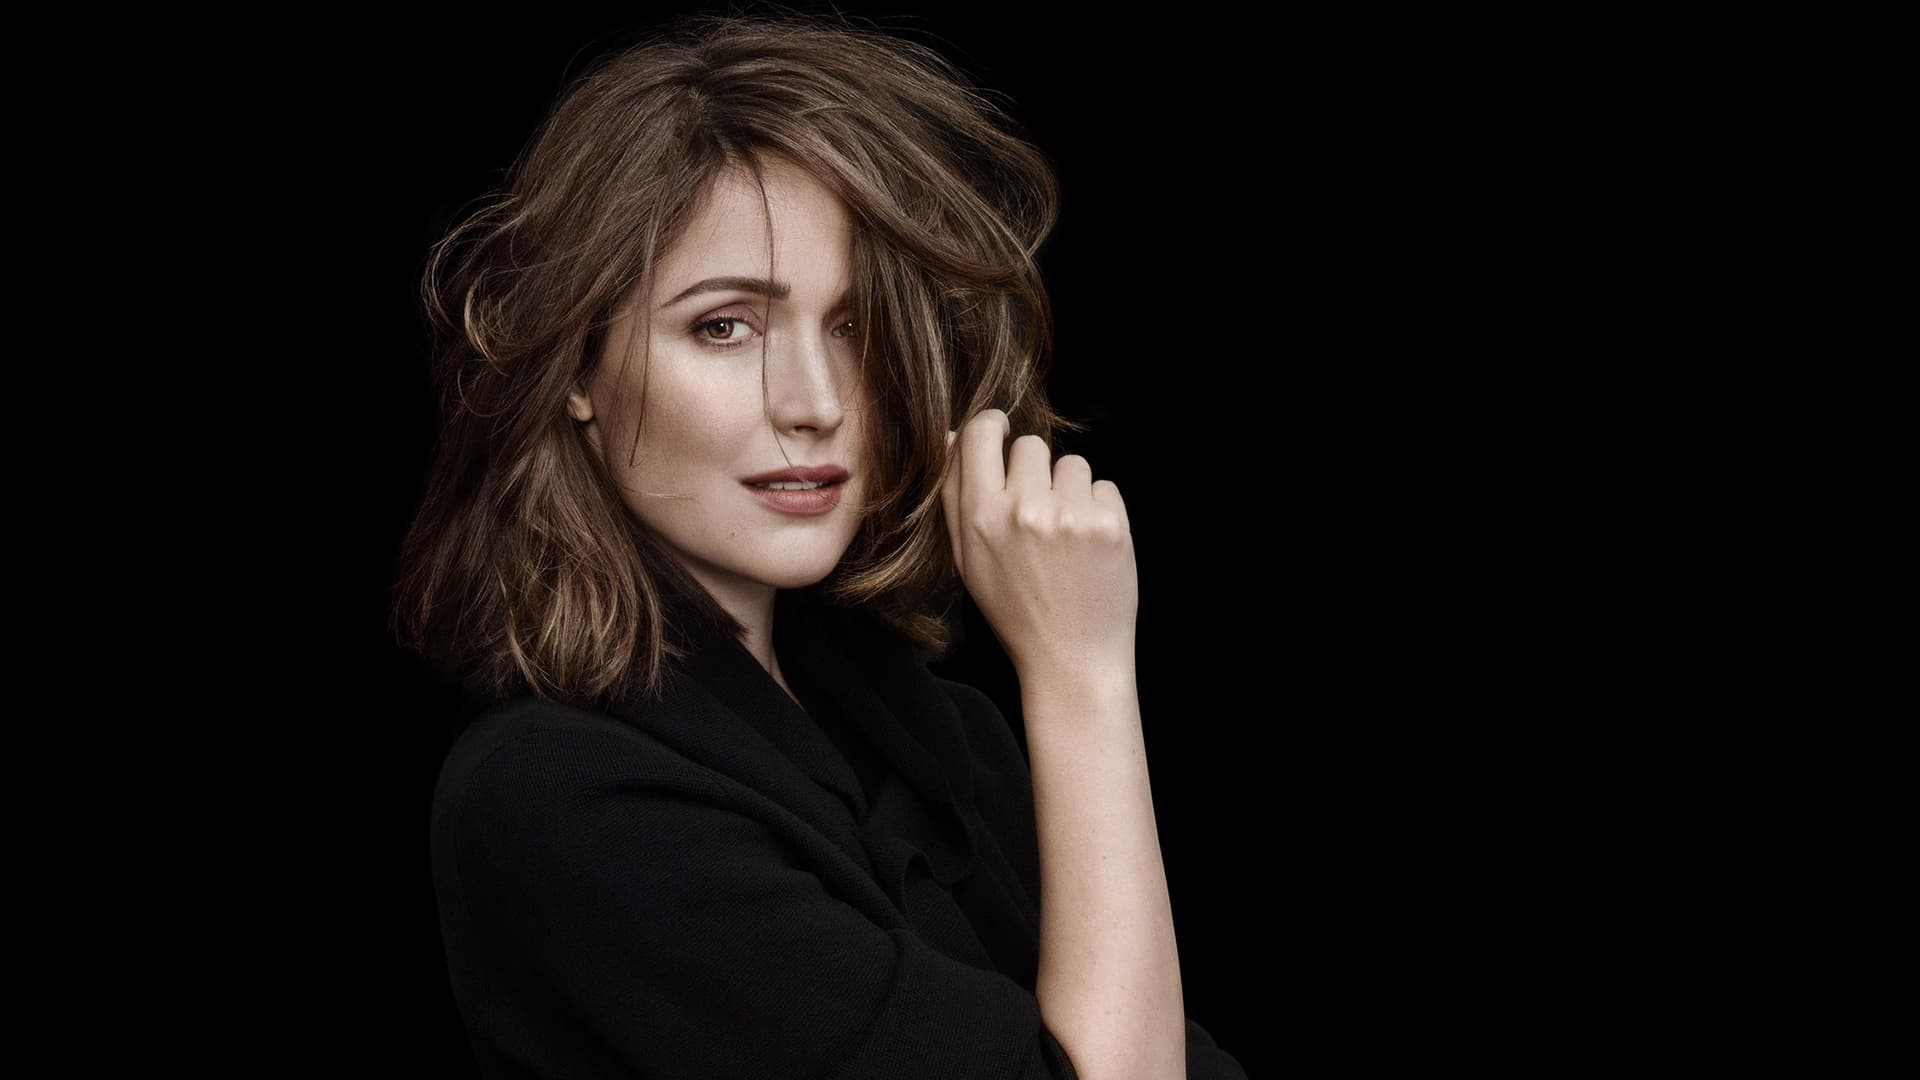 Illustrated Car Wallpaper 17 Rose Byrne Wallpapers Hd High Quality Download